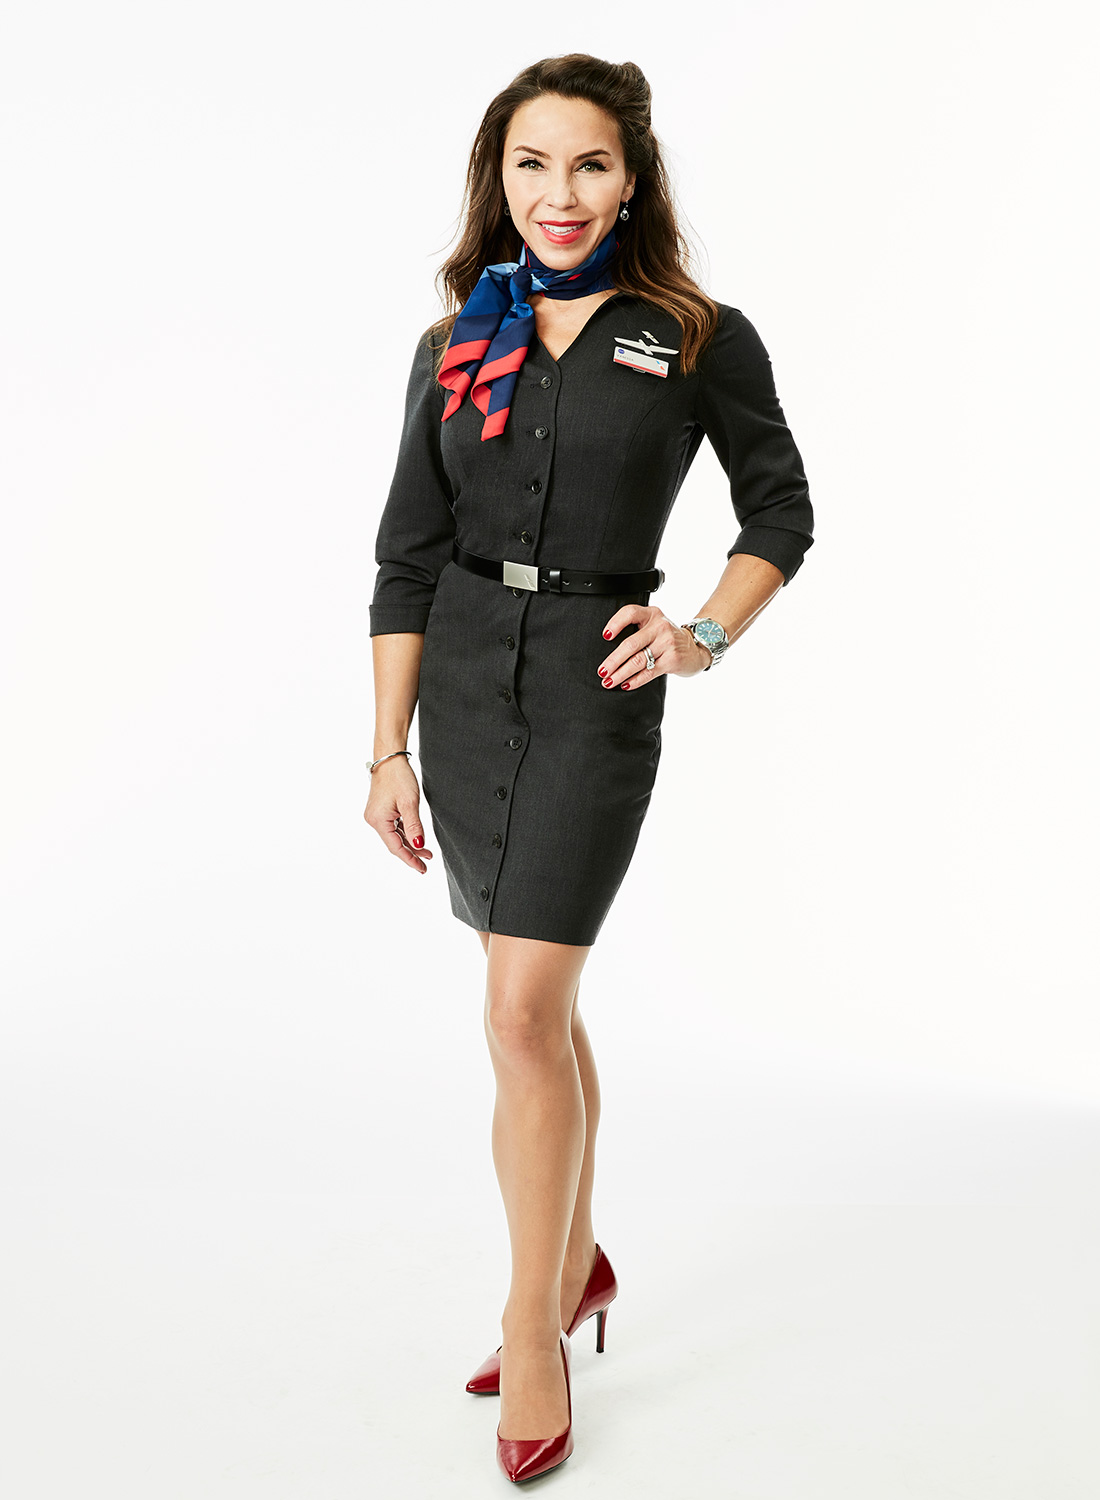 160920_AmericanAirlines_Portraits_By_BriJohnson_0028.jpg